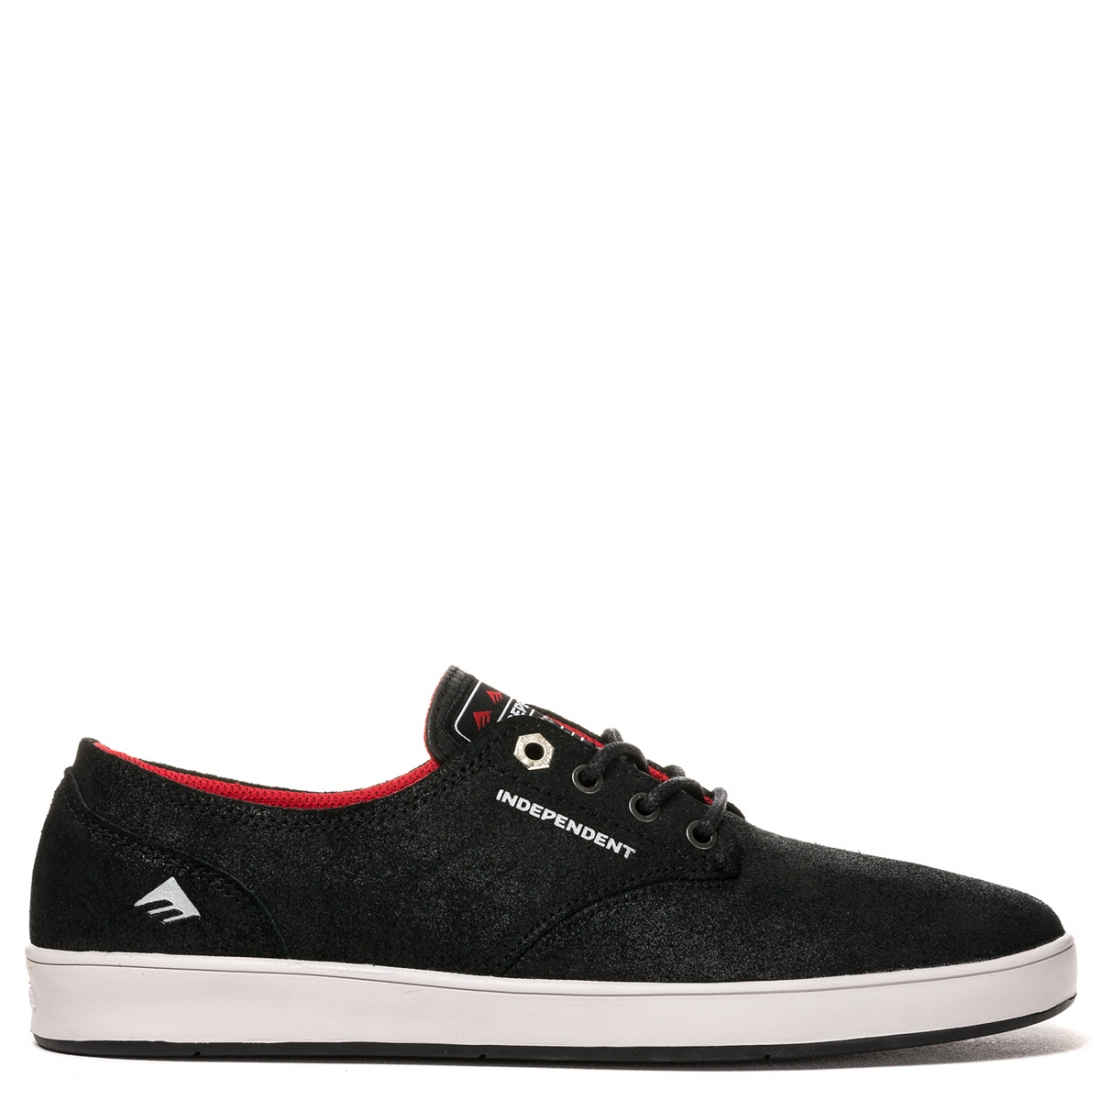 Emerica Shoes Romero Laced x Indy Black Grey Black USA SIZE Skateboard Sneakers FREE POST